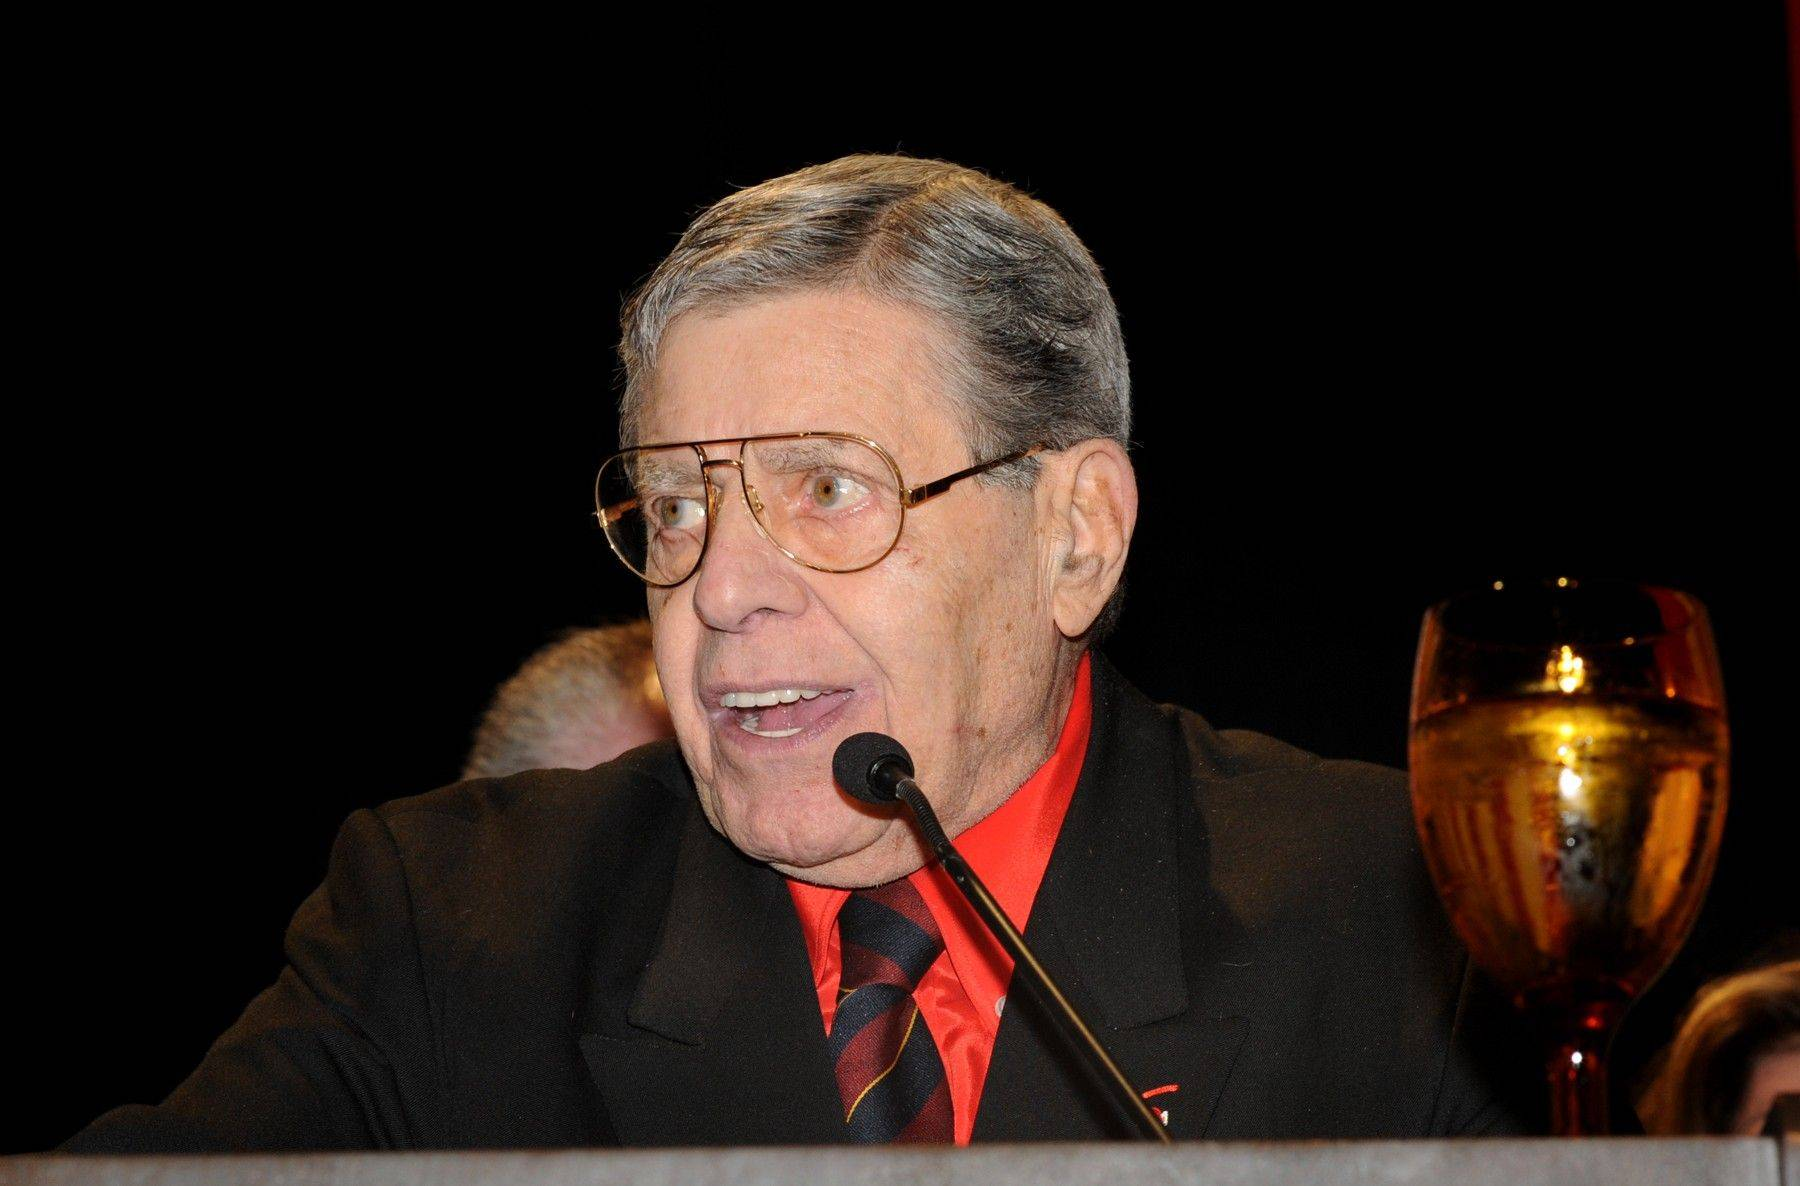 In this photo provided by the Las Vegas News Bureau, Jerry Lewis accepts the Nevada Broadcasters Association (NBA) Lifetime Achievement Award, in Las Vegas Saturday Aug. 20, 2011. Lewis said Saturday that he made his reputation in show business by saving lives.